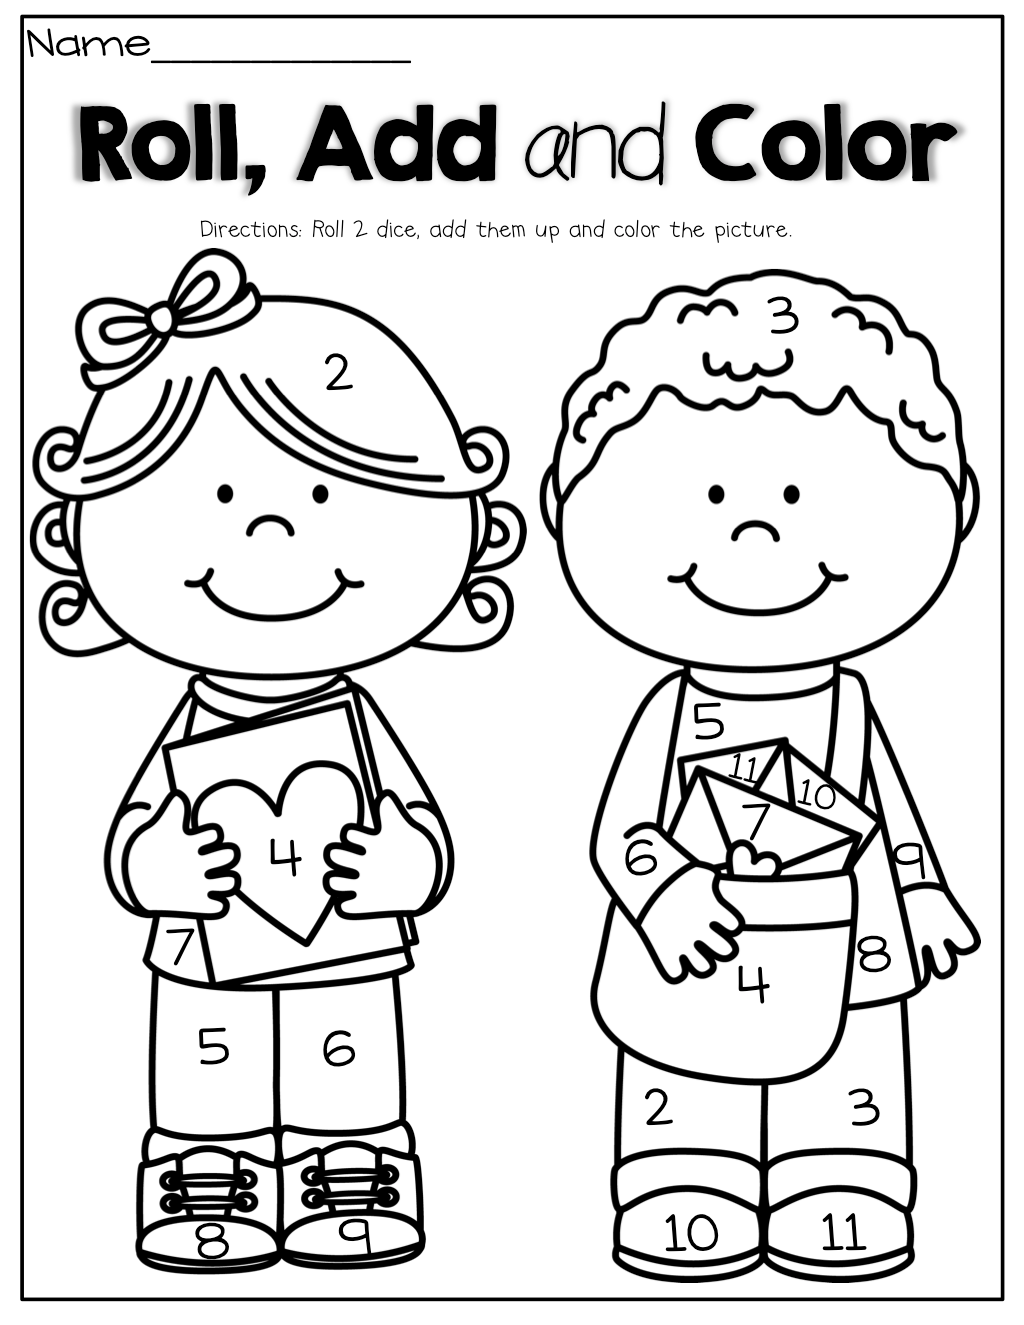 Roll, Add and Color! Roll 2 dice, add them up and color